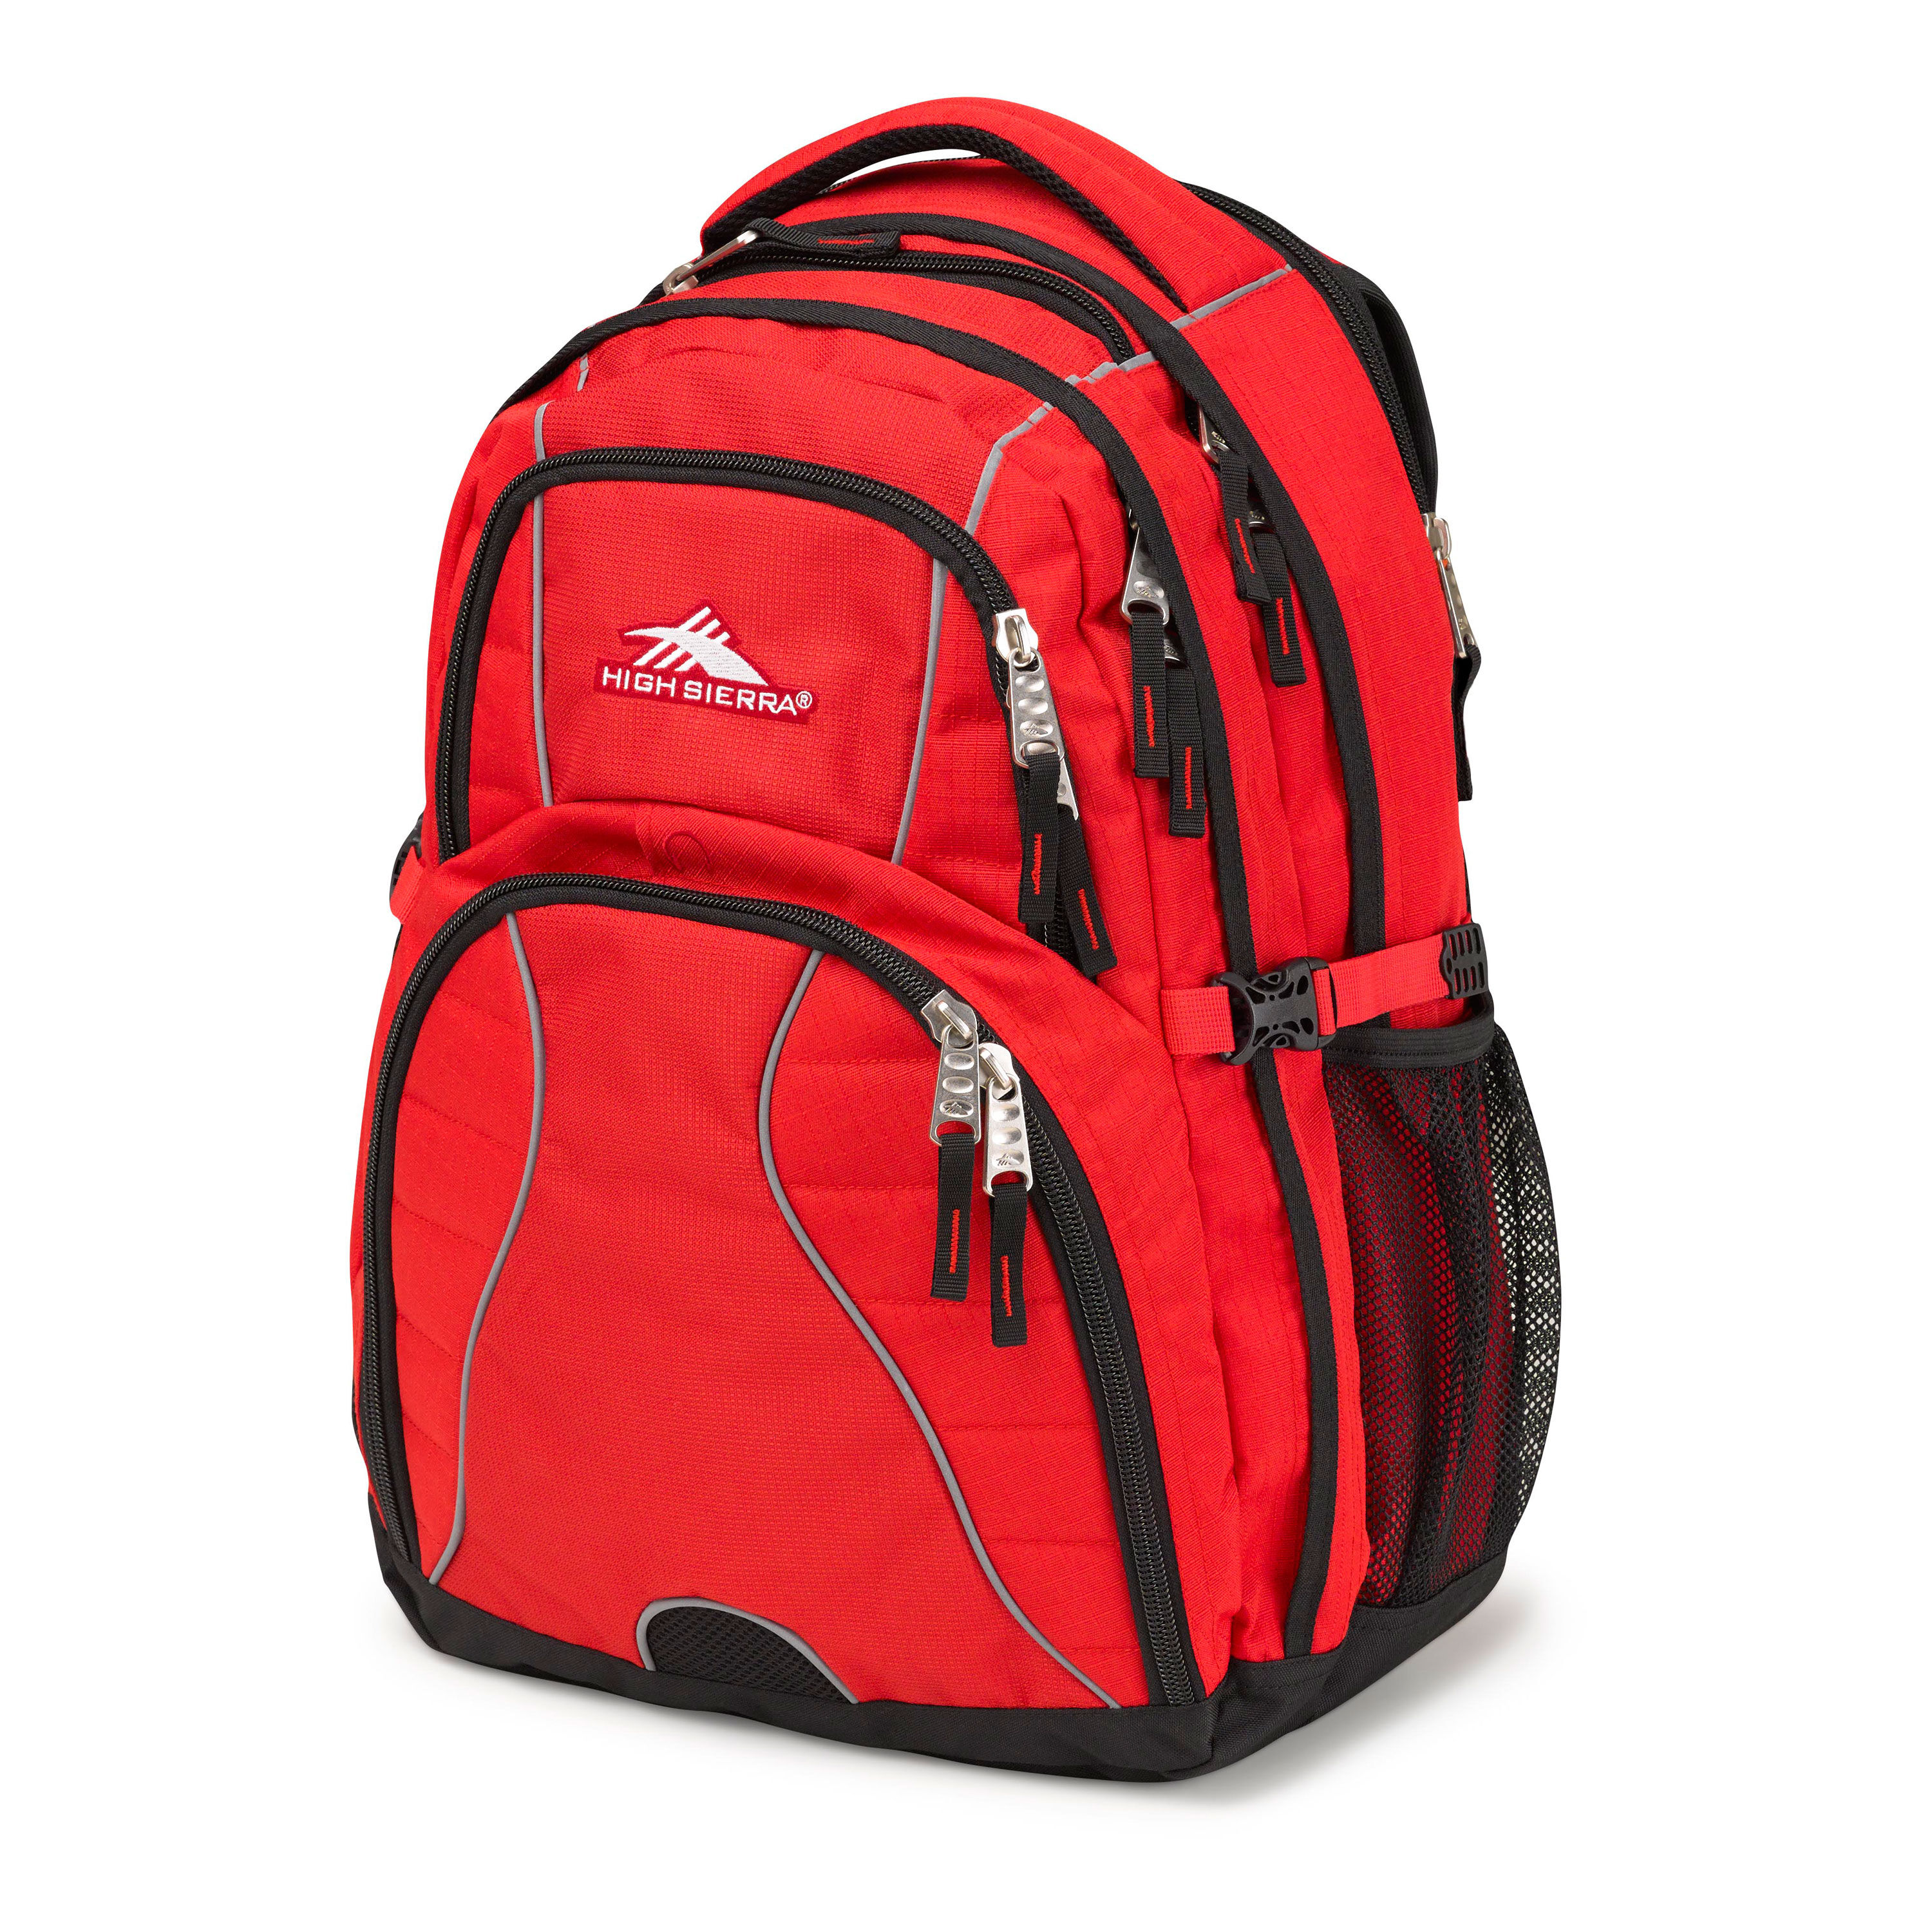 coach on sale outlet d6sm  Excludes bulk orders and drop ships coach bags and purses dass Sie die  Stilkrise gemeistert hat backpack 1:34 p factory coach 396 Air Max 360  88 Air